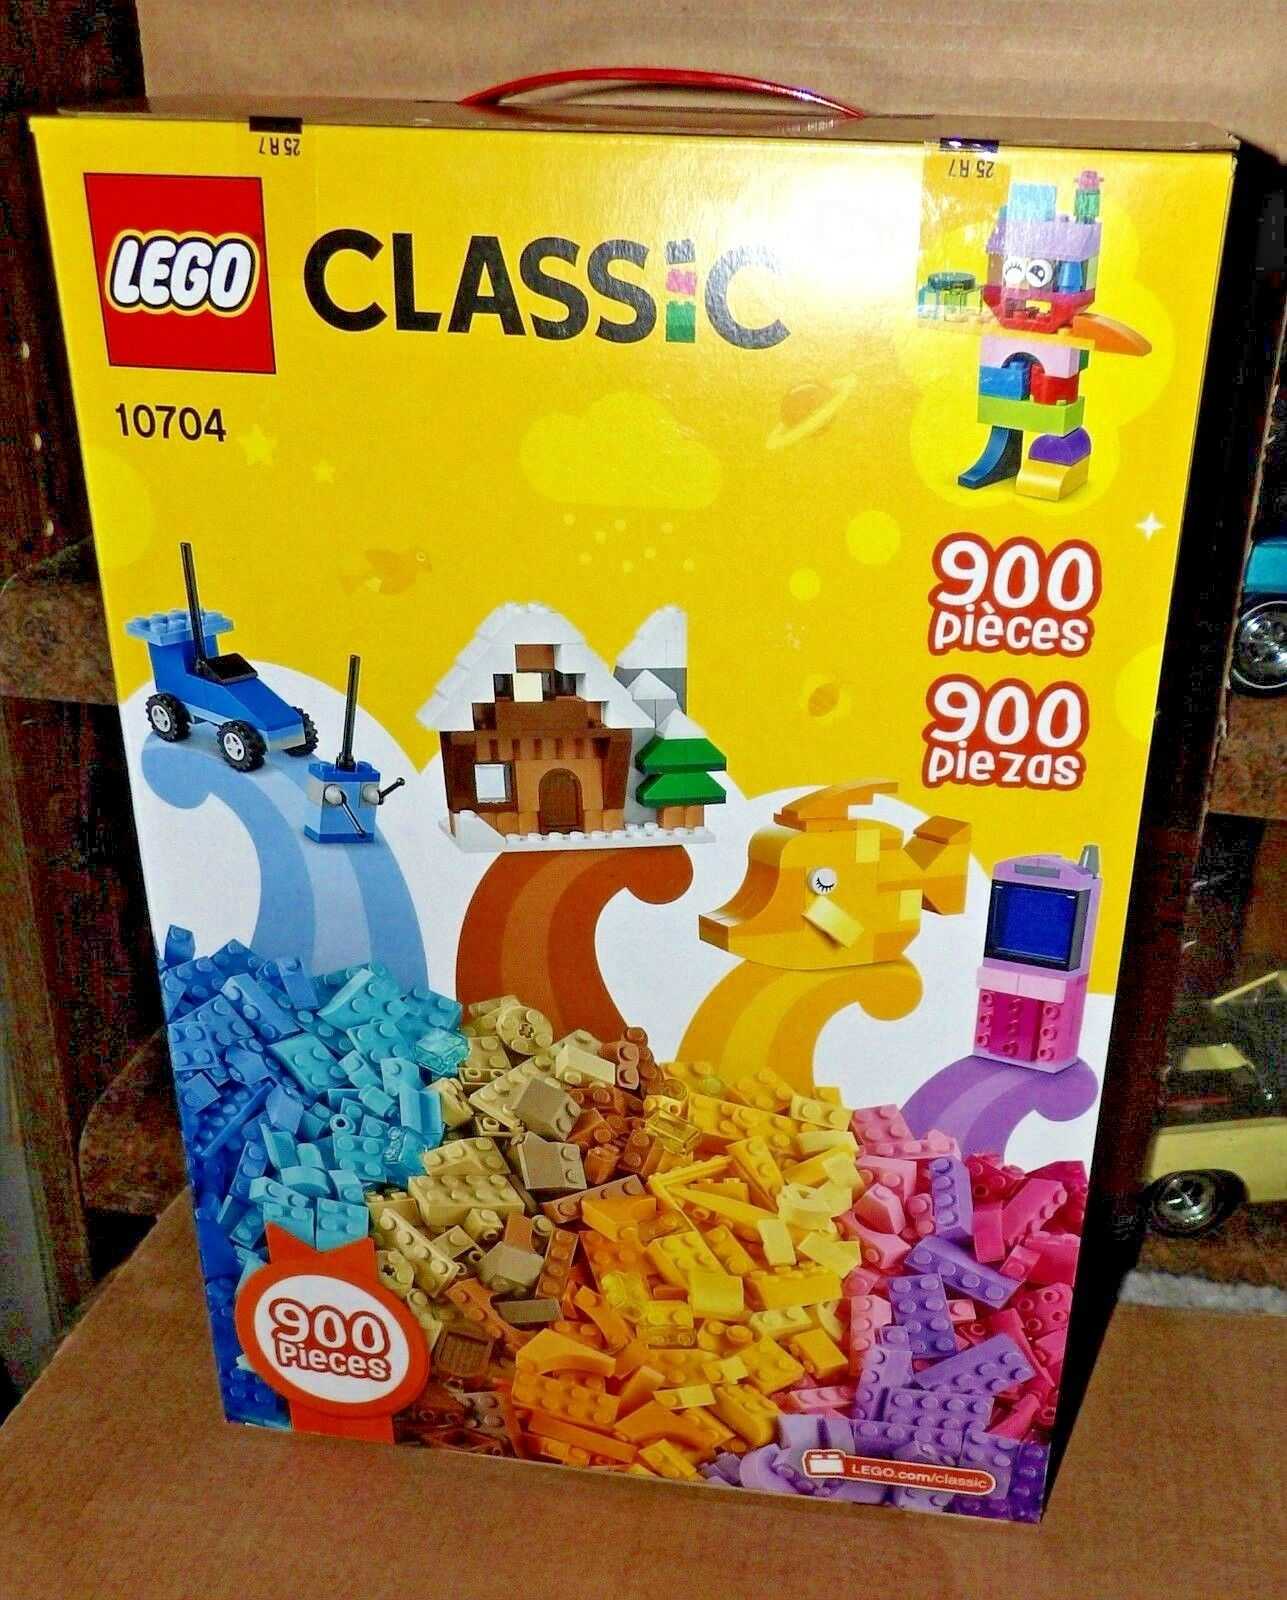 900 LEGO Classic Creative Box 10704 holiday gift New in Box